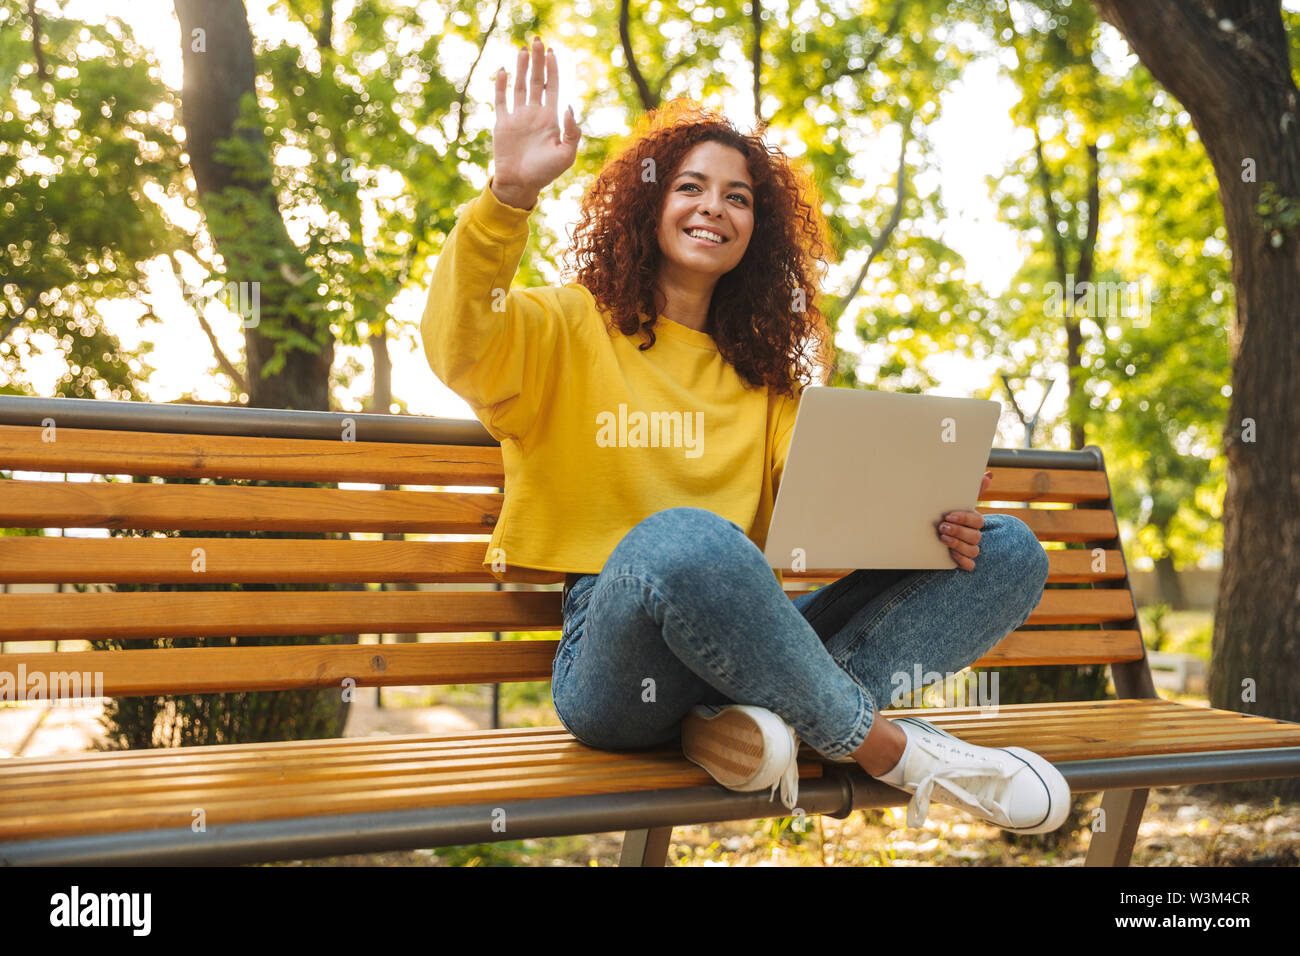 Image of a smiling cheerful young beautiful curly student girl sitting outdoors in nature park using laptop computer waving to friends. - Stock Image